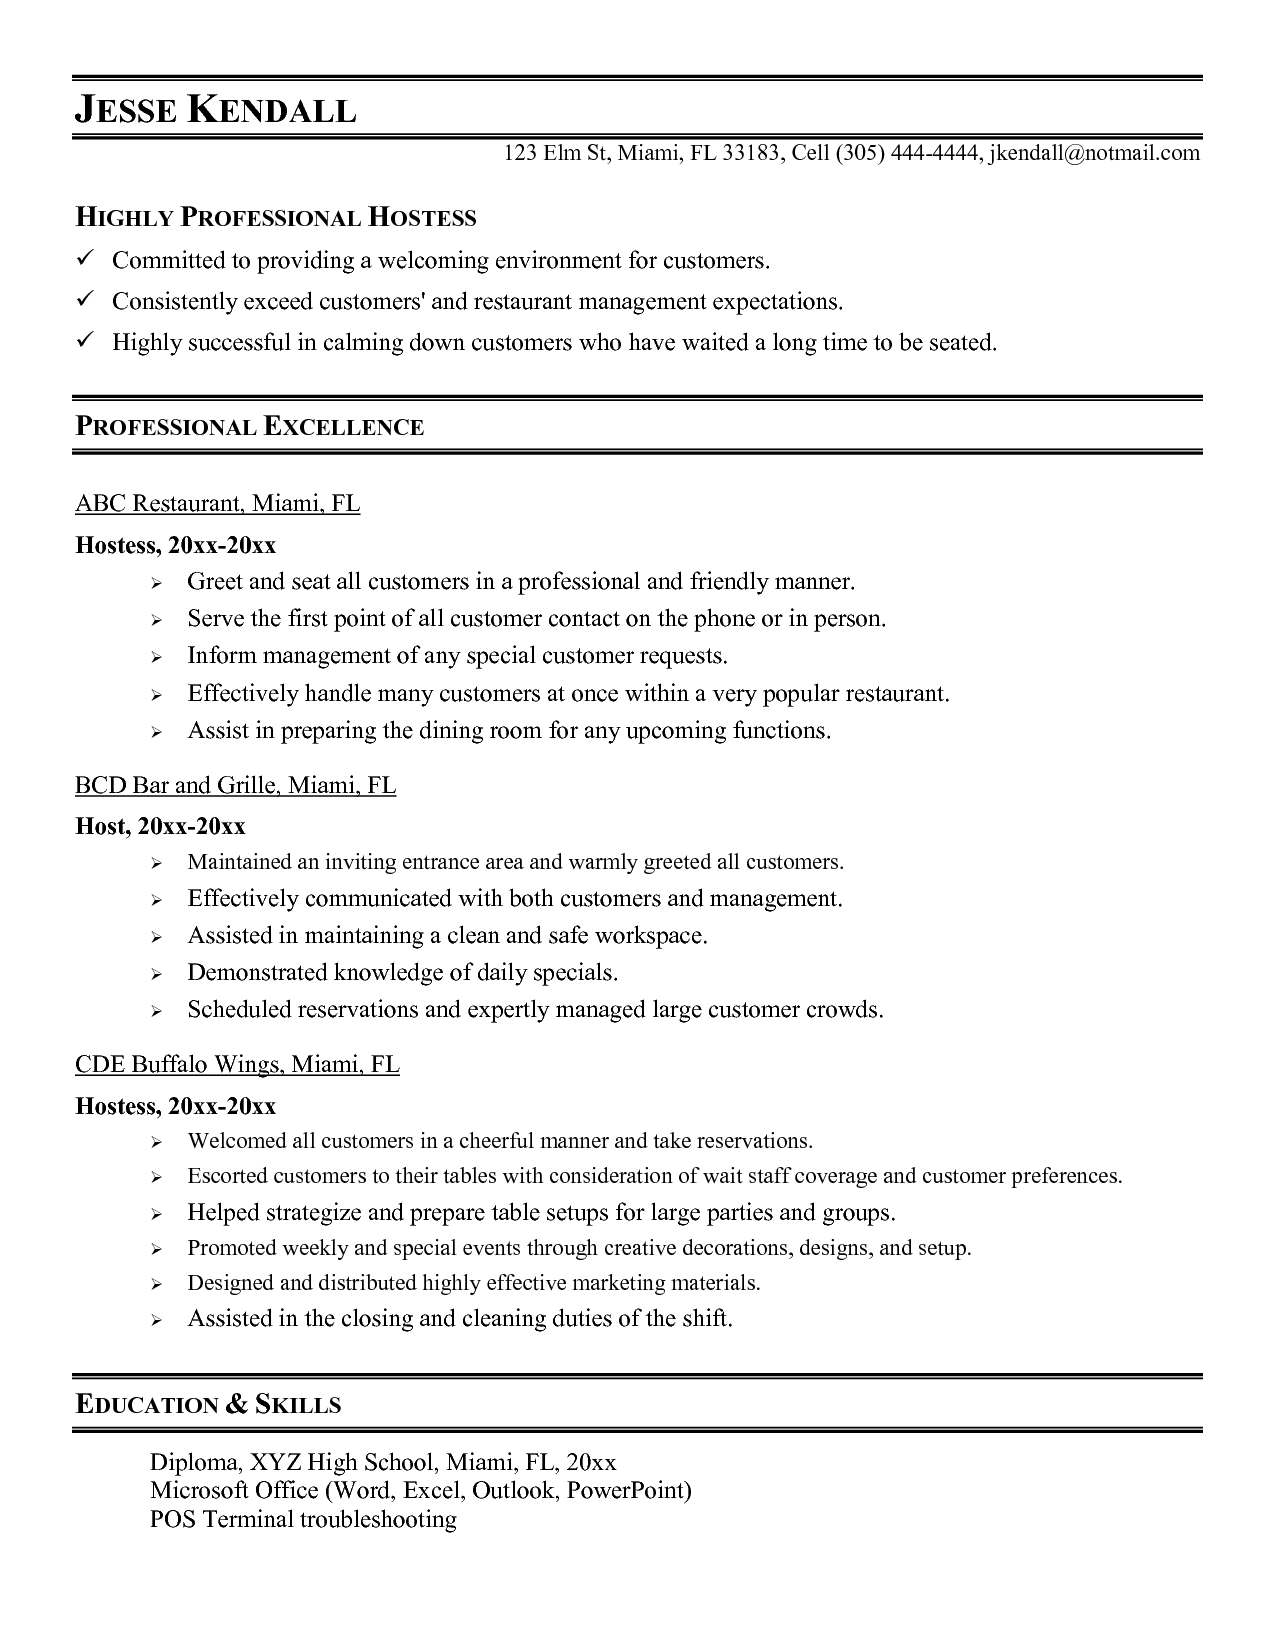 hostess job description for resume